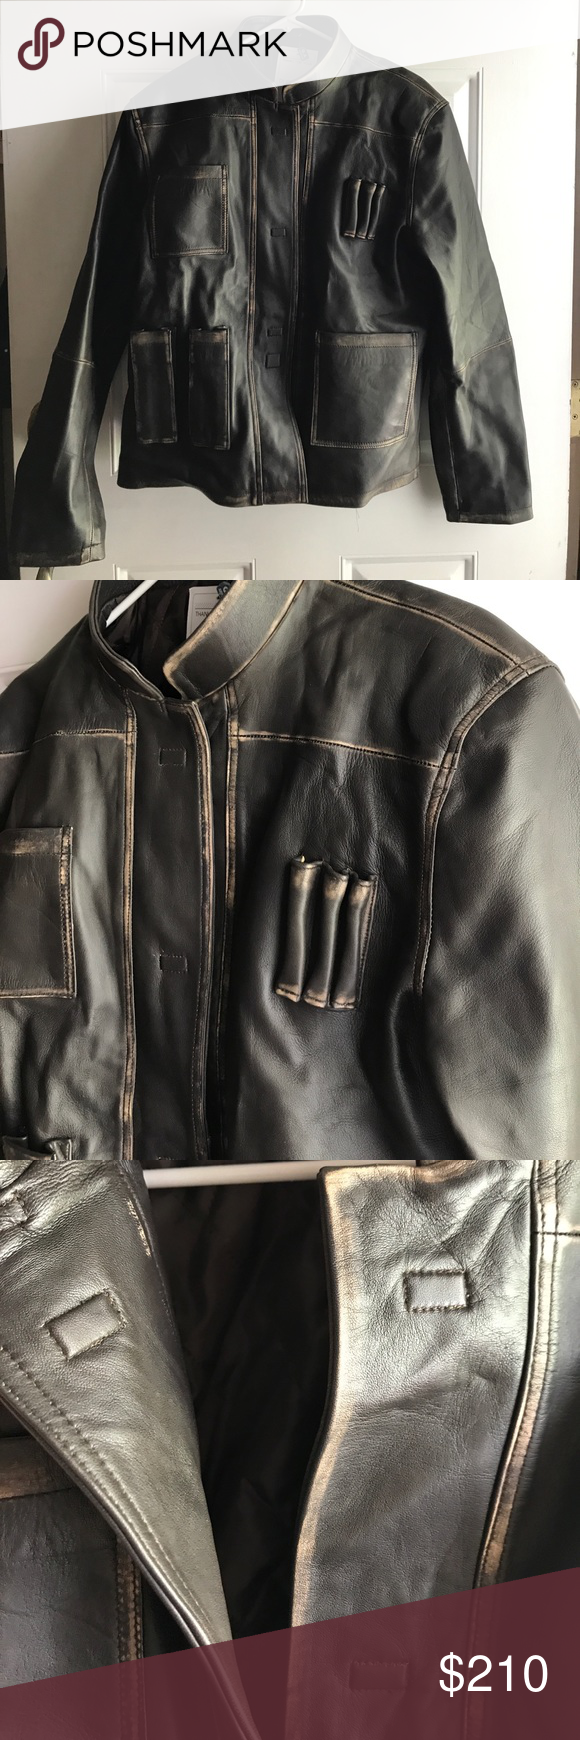 Han Solo Leather Jacket L Nwt Leather Jacket Jackets Han Solo Costume [ 1740 x 580 Pixel ]